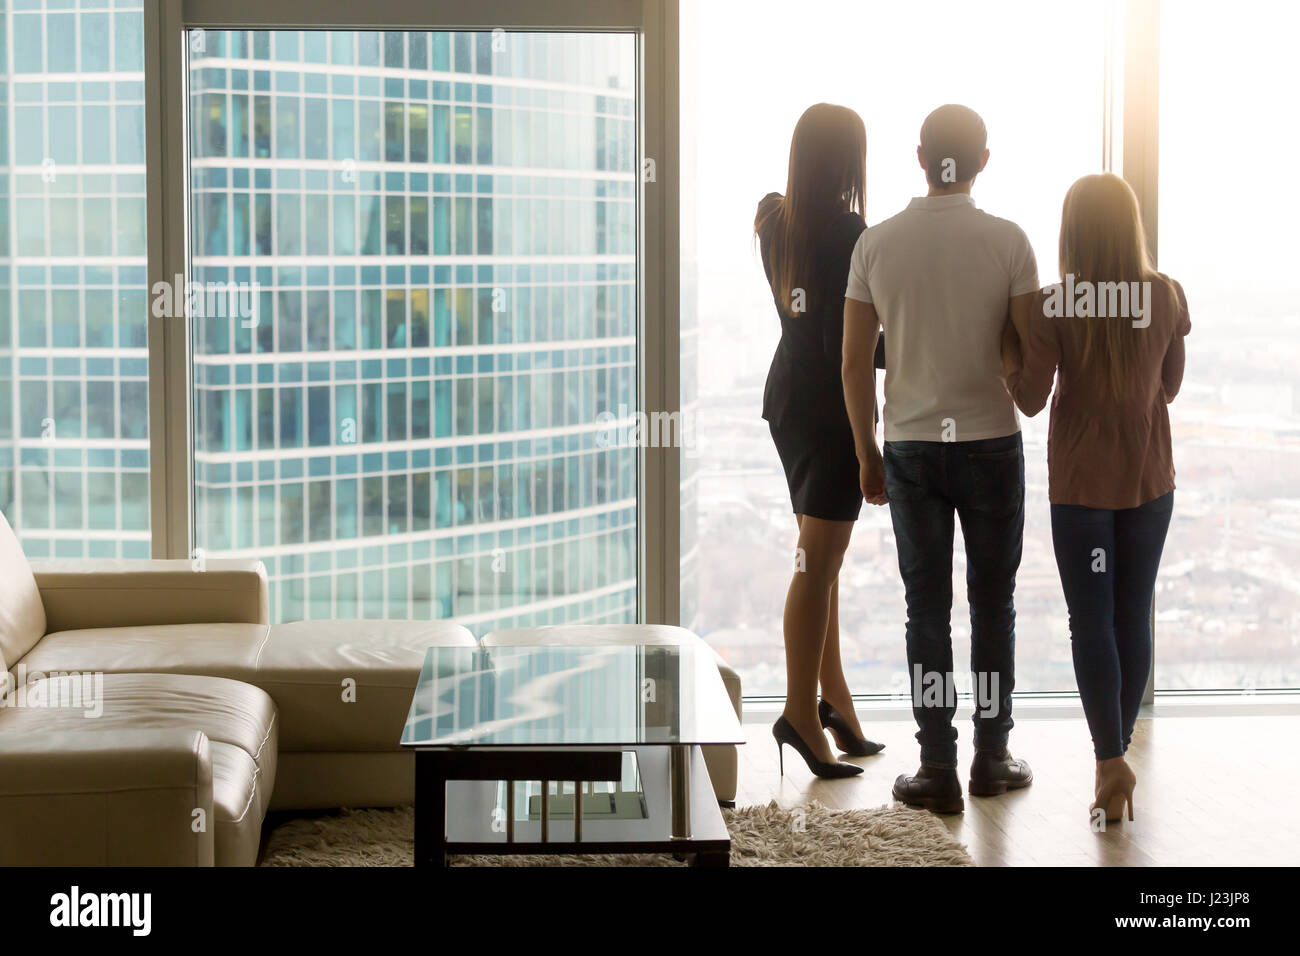 Man and two women looking out the window, rear view - Stock Image